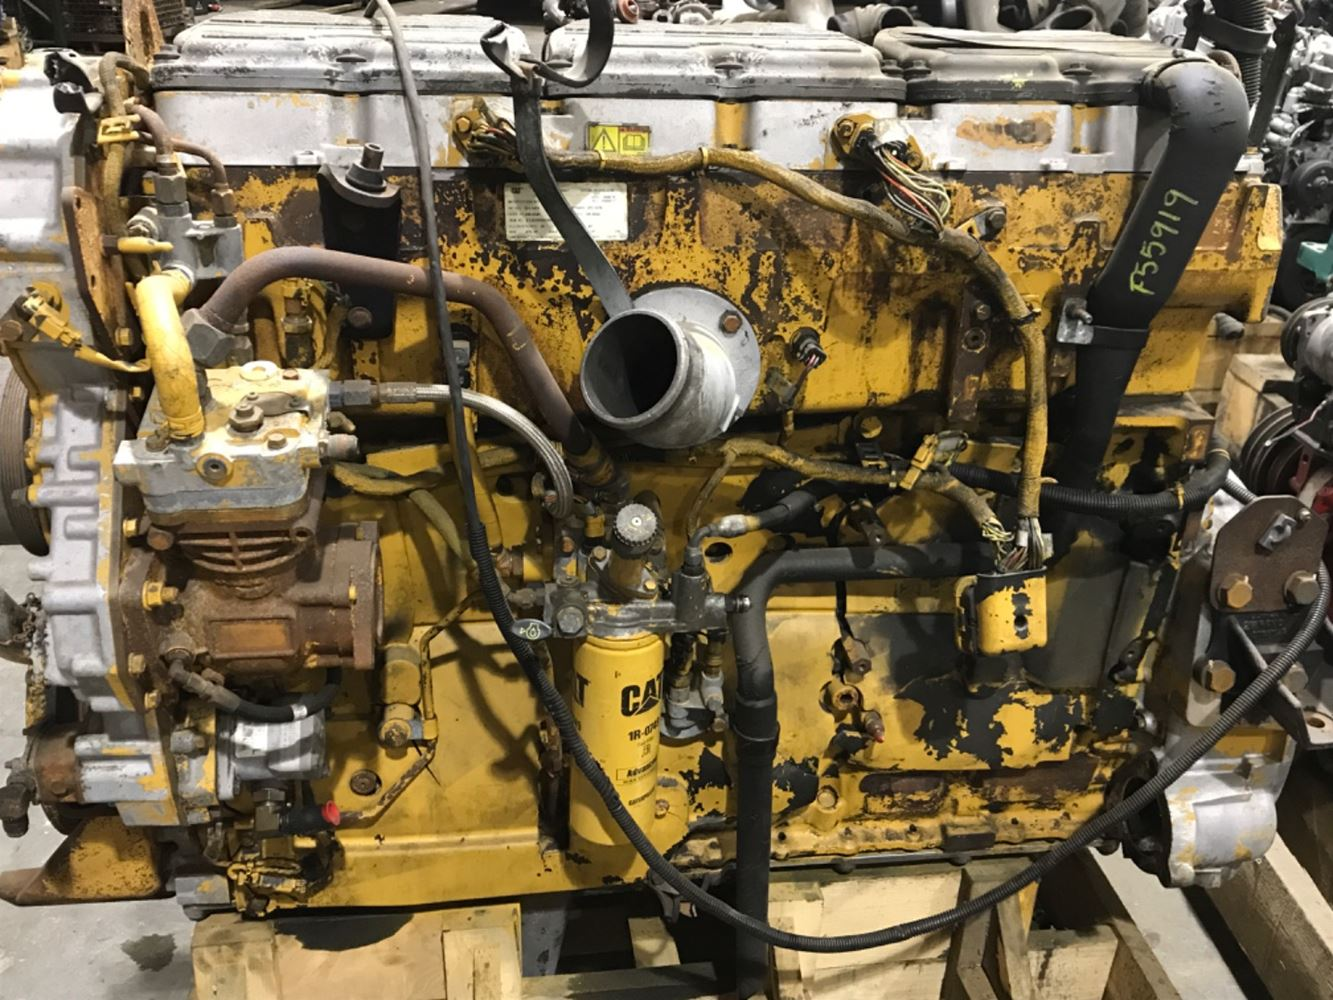 2006 CATERPILLAR C15 ENGINE ASSEMBLY TRUCK PARTS #690444